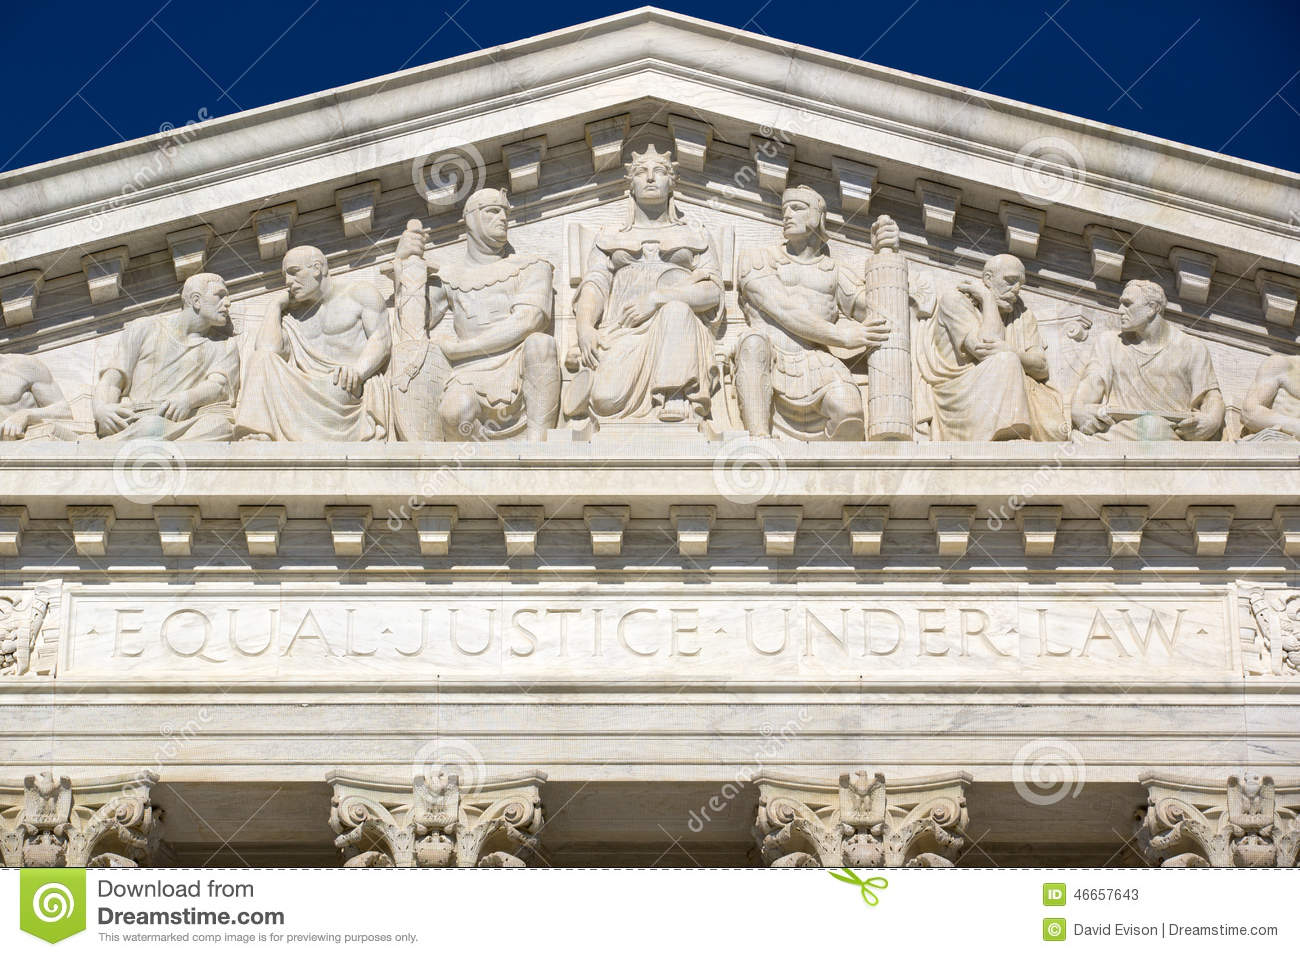 Frieze at the Supreme Court